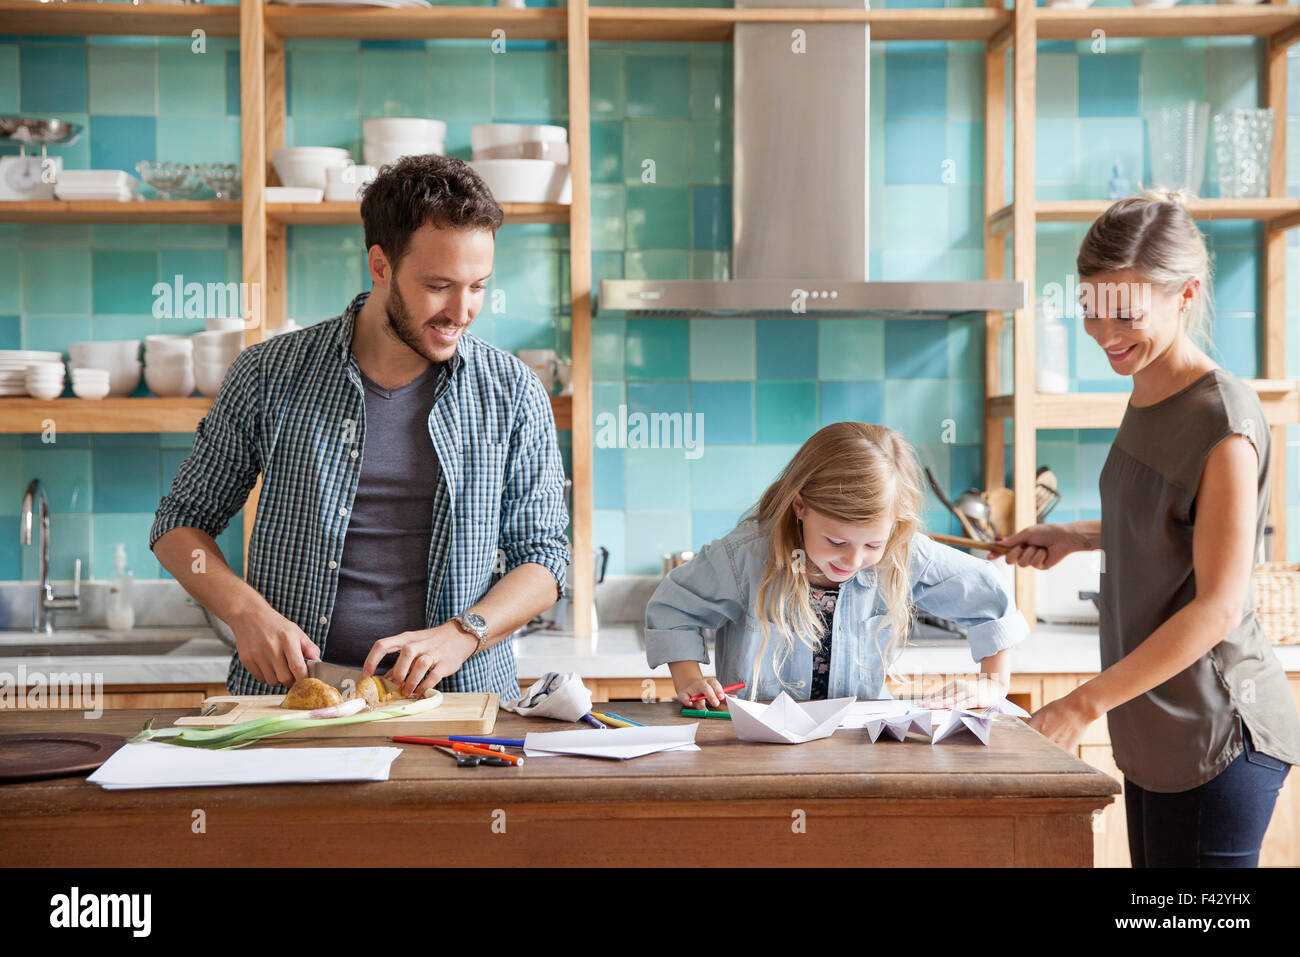 Young daughter drawing at kitchen counter while parents prepare meal - Stock Image